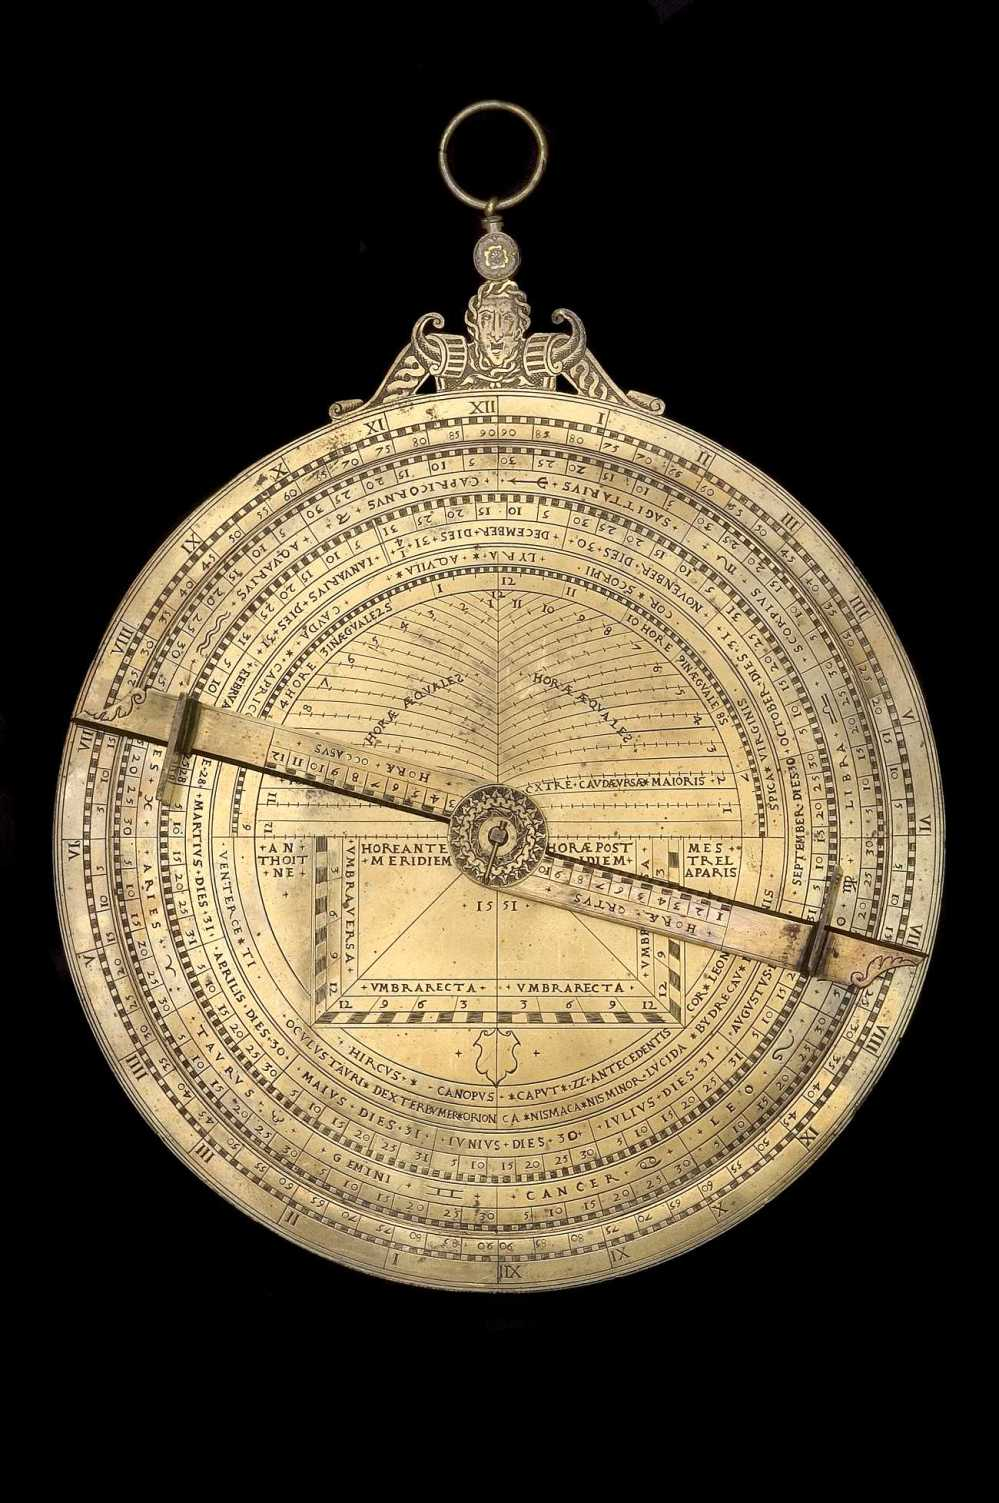 preview image for Universal Astrolabe, by Anthoine Mestrel, Paris, 1551